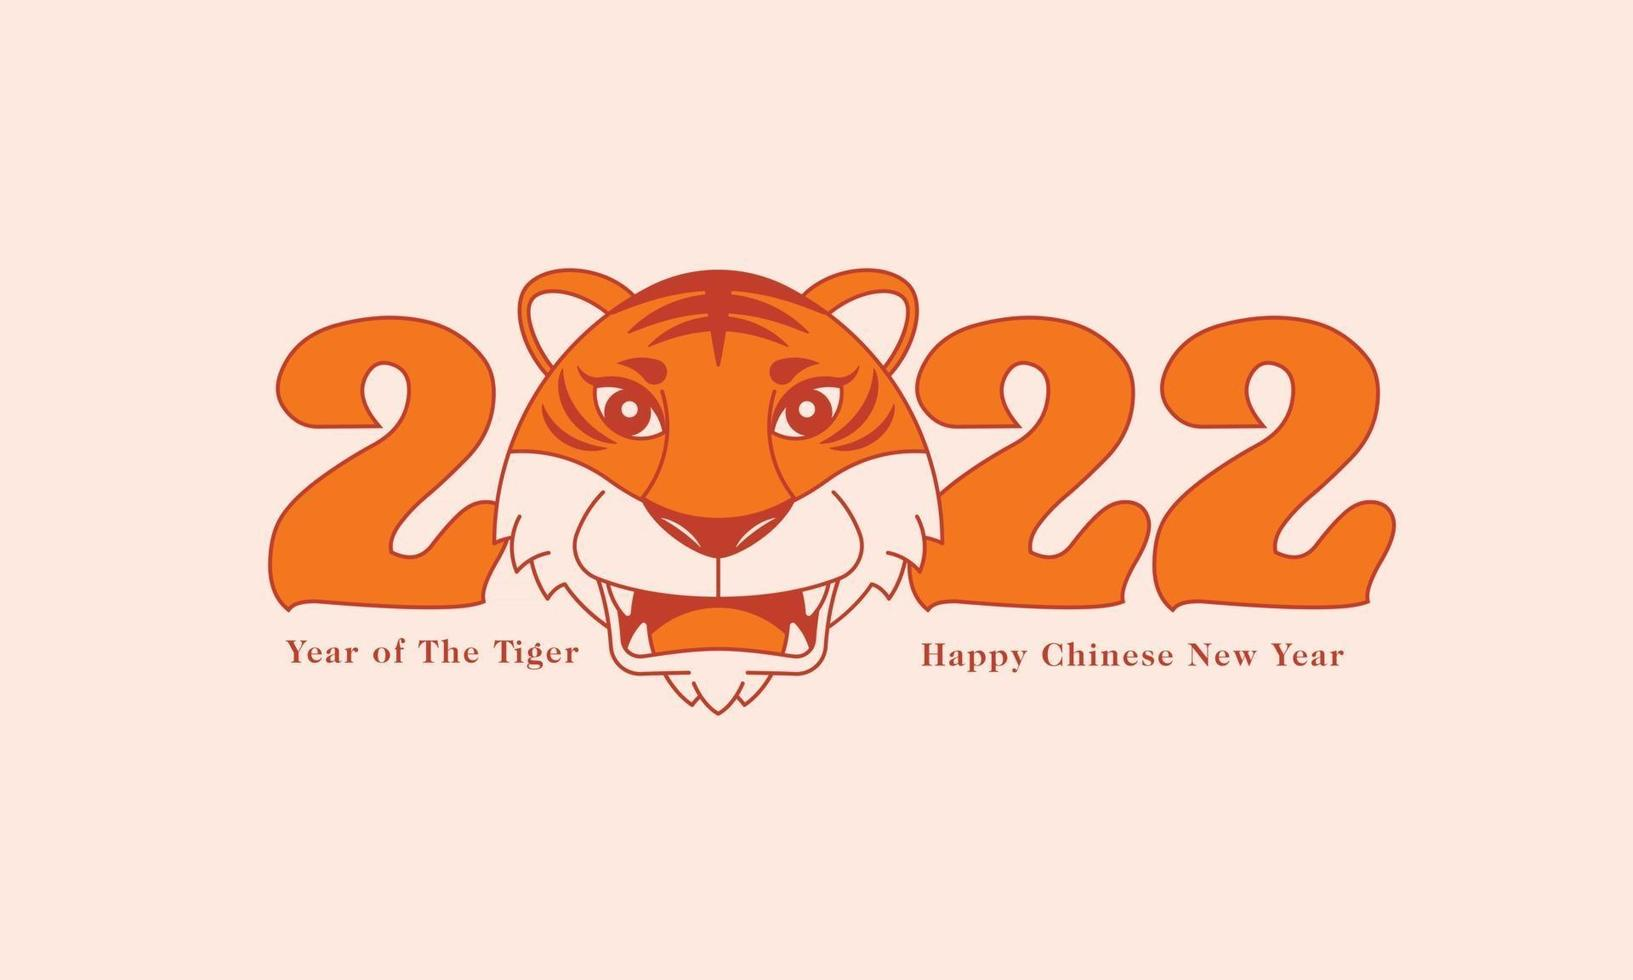 Happy Chinese New Year 2022. Symbolic Tiger head on 2022 lunar calendar year of the Tiger. vector